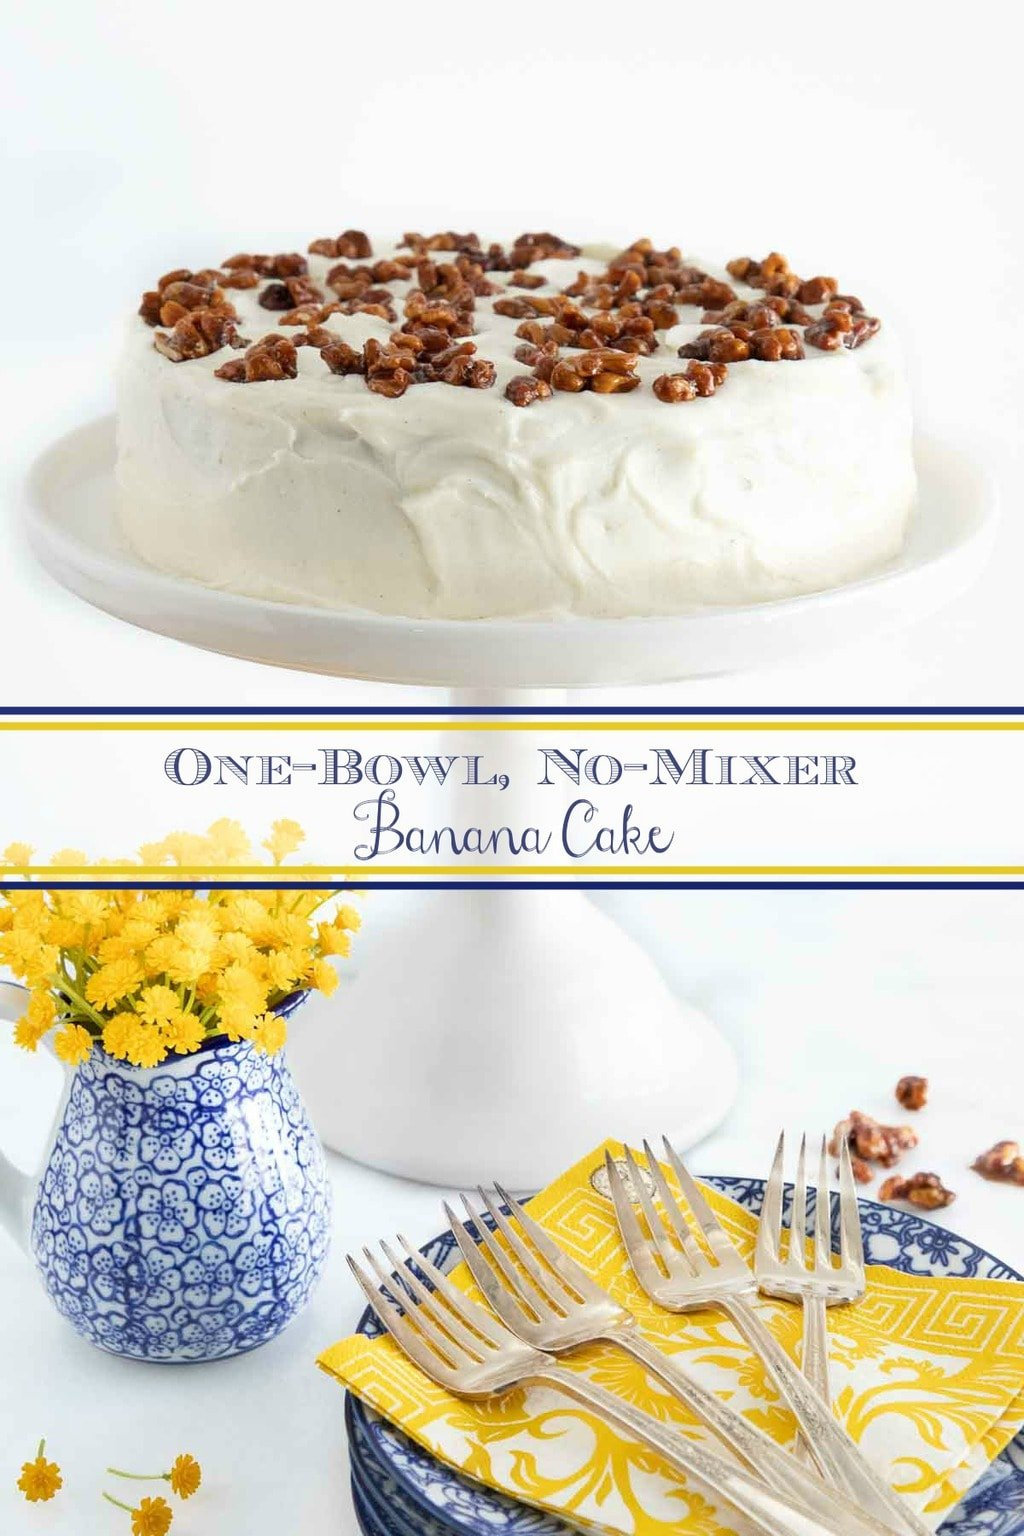 One-Bowl No-Mixer Banana Cake